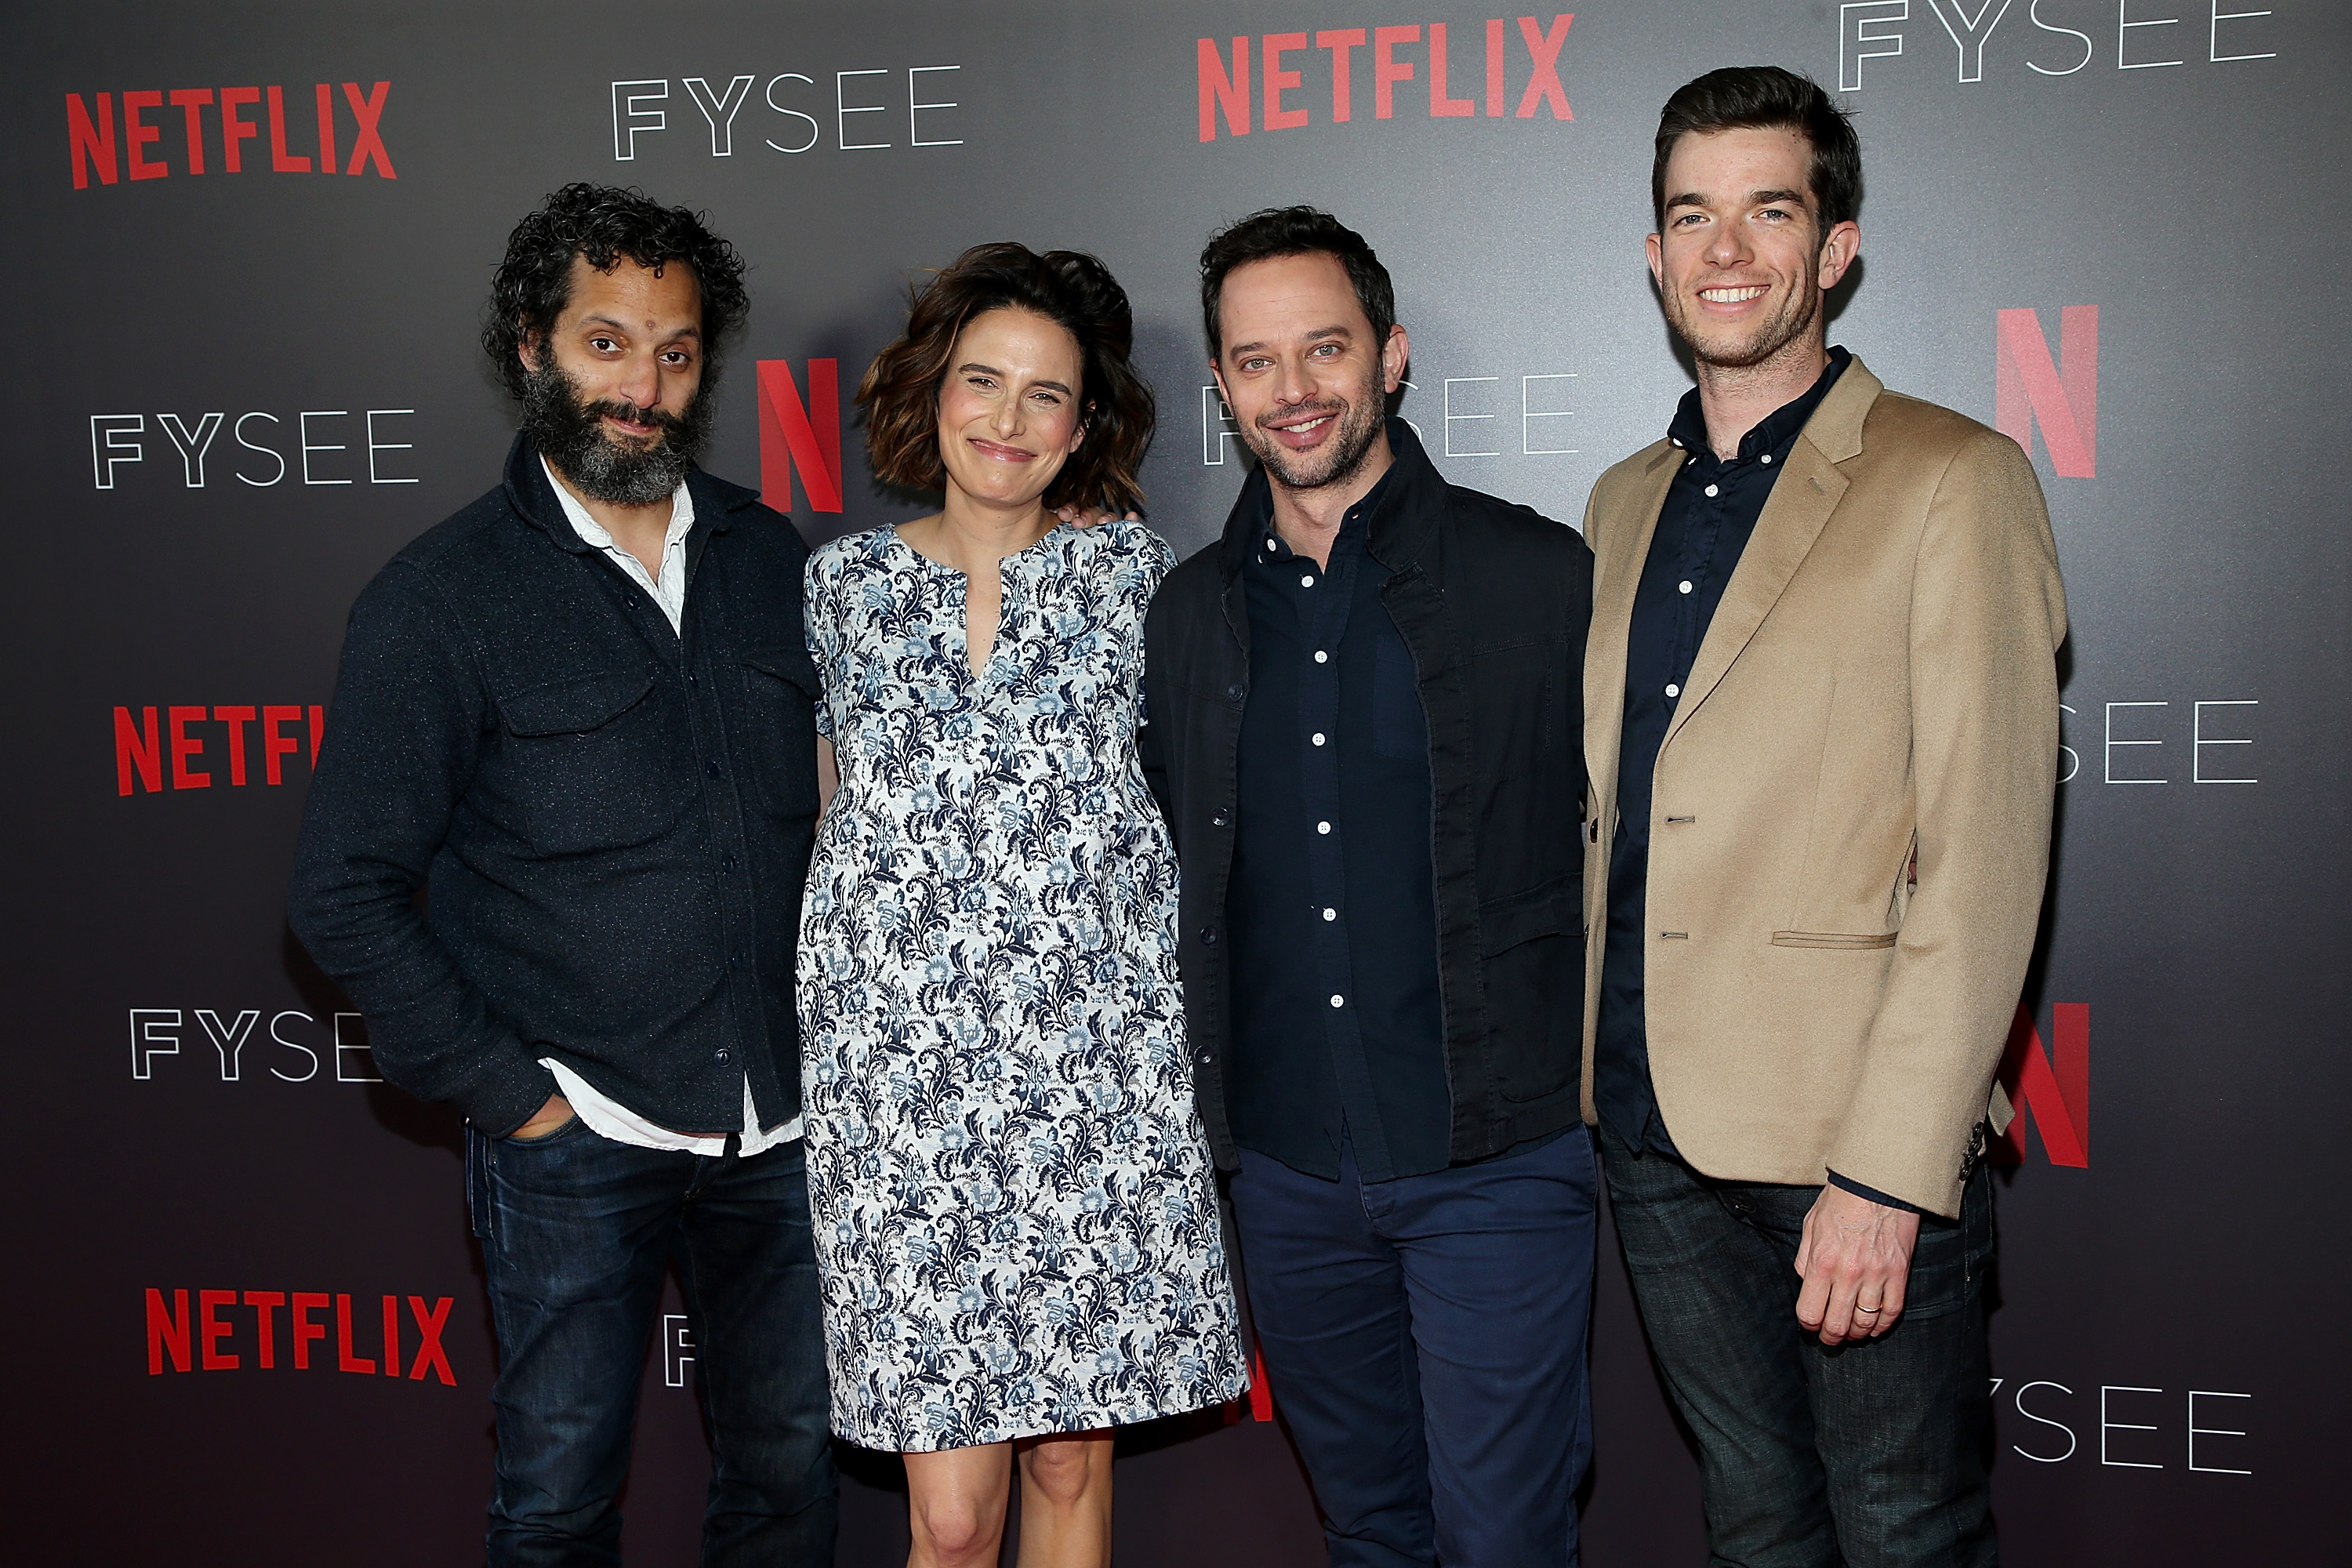 (L-R) Jason Mantzoukas, Jessi Klein, Nick Kroll, and John Mulaney attend the #NETFLIXFYSEE Animation Panel Featuring 'Big Mouth' and 'BoJack Horseman' at Netflix FYSEE at Raleigh Studios on May 21, 2018, in Los Angeles, California. (Getty Images)